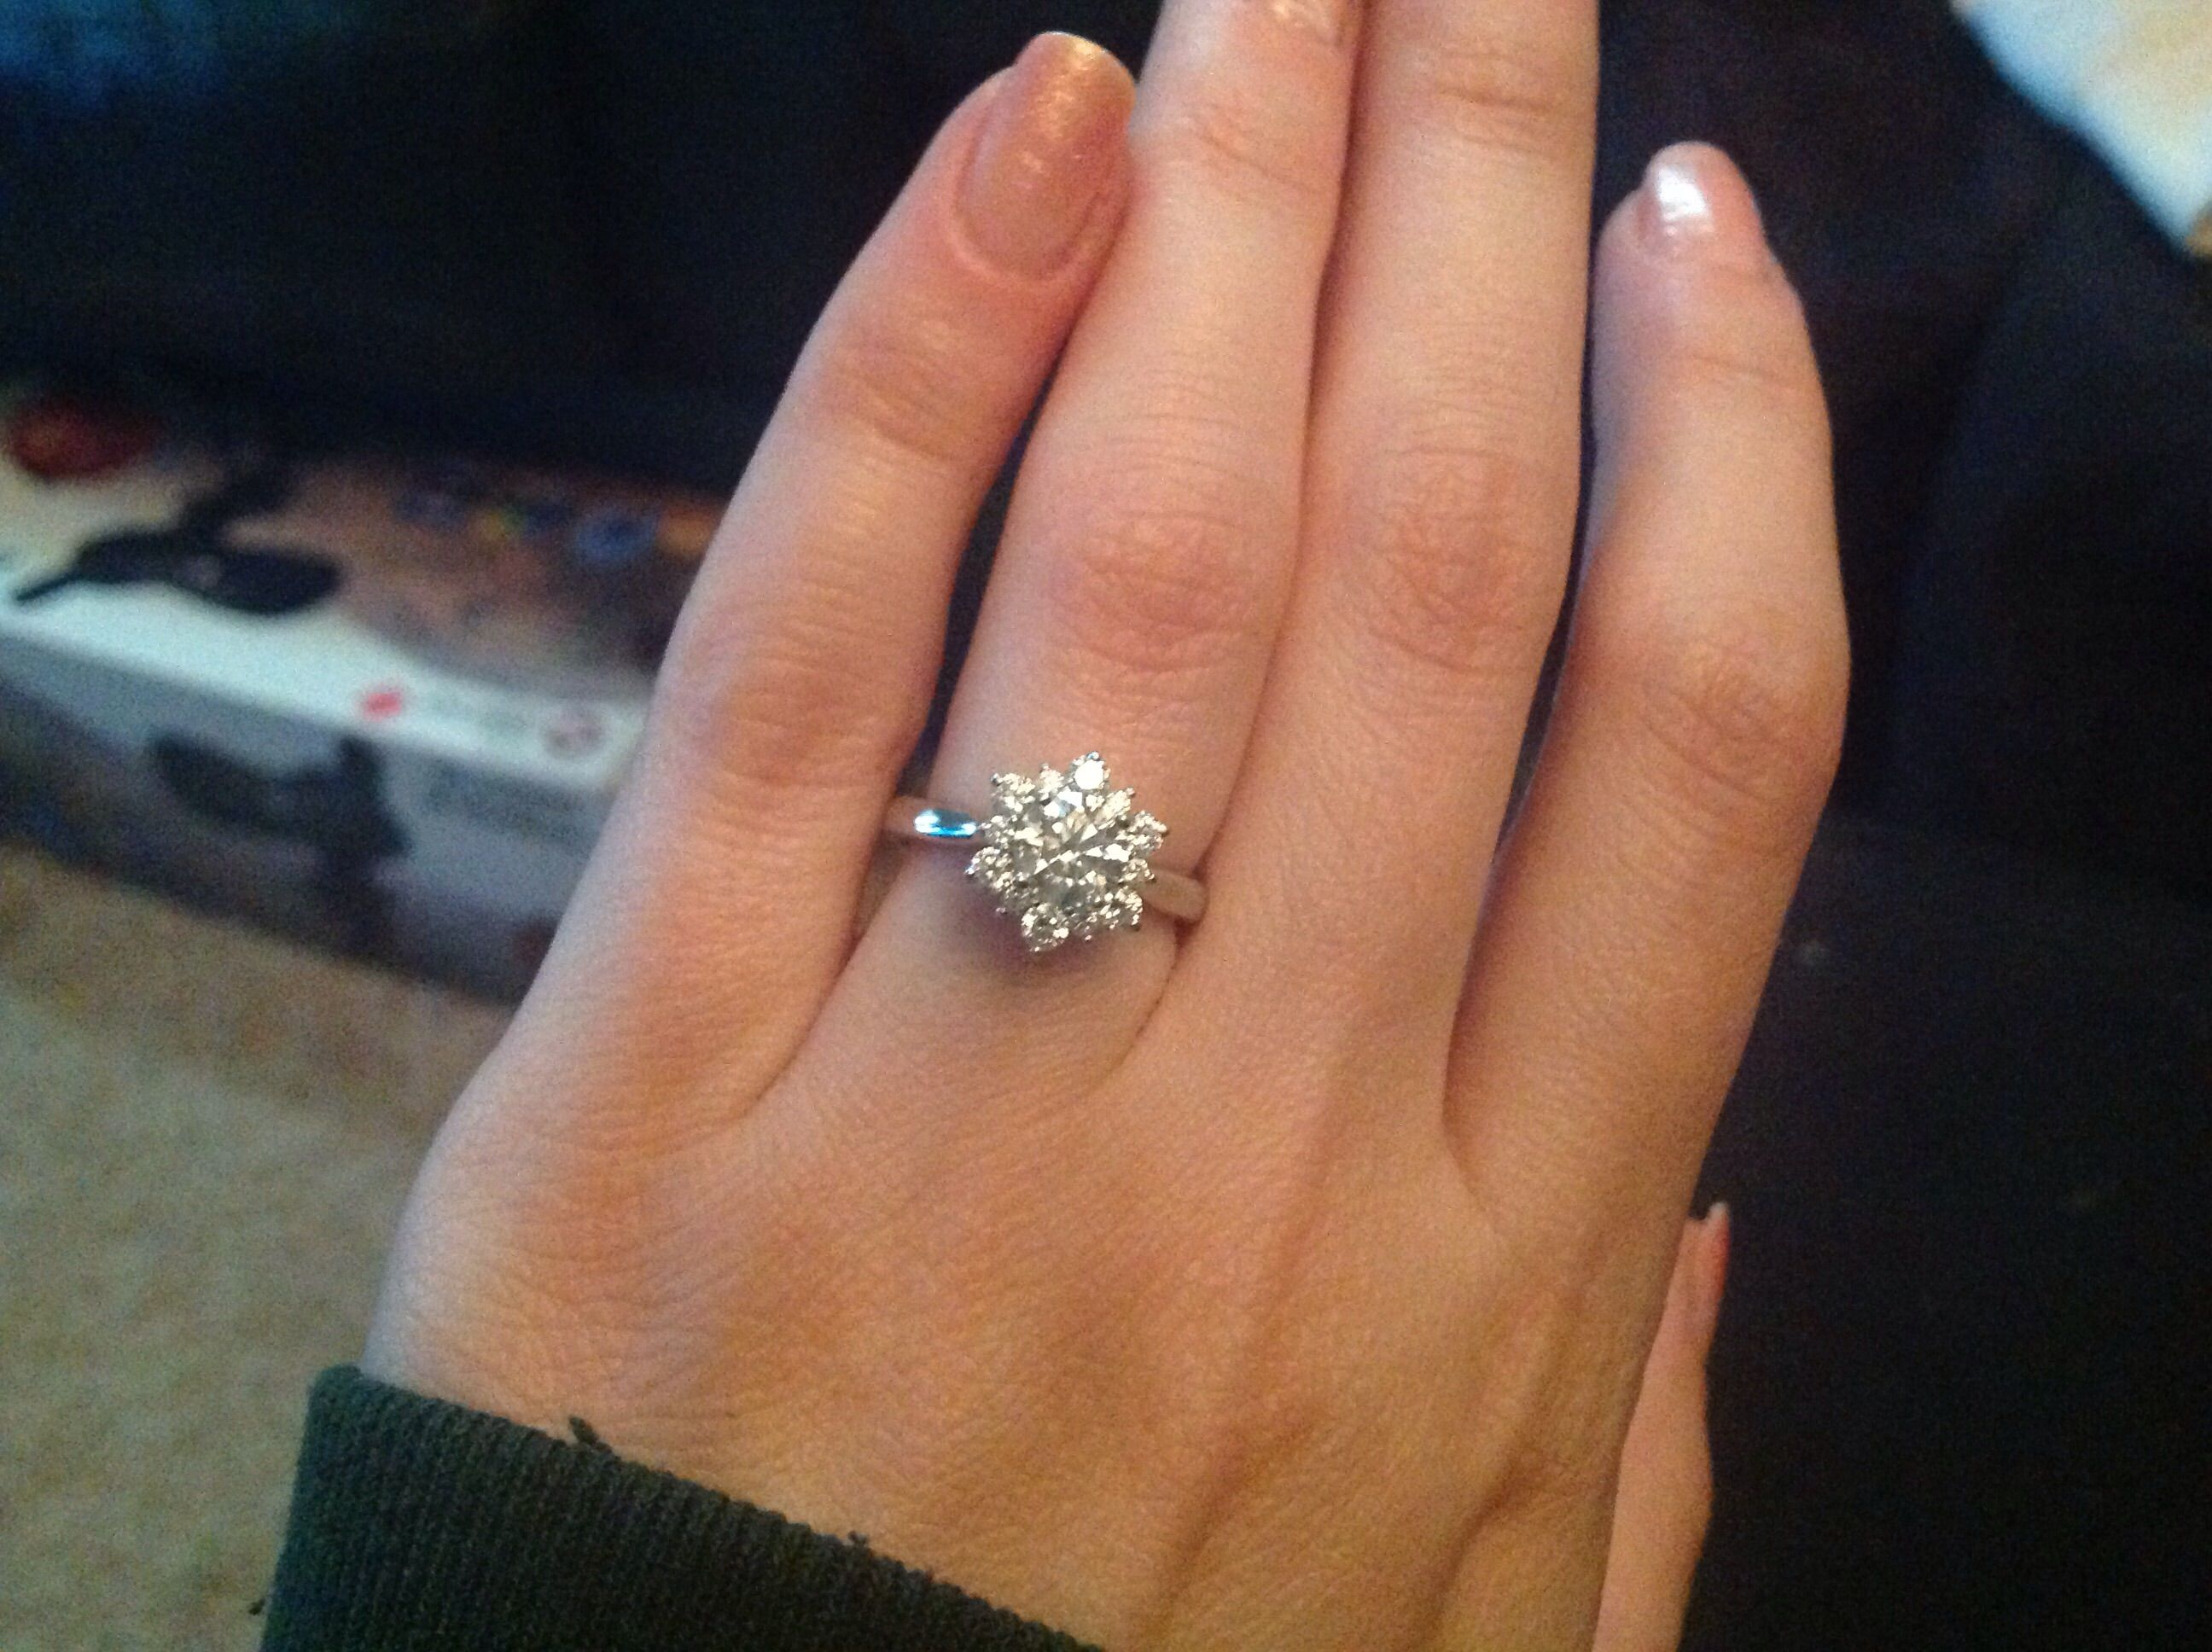 Ering of my dreams!!! Lets see your halo rings with